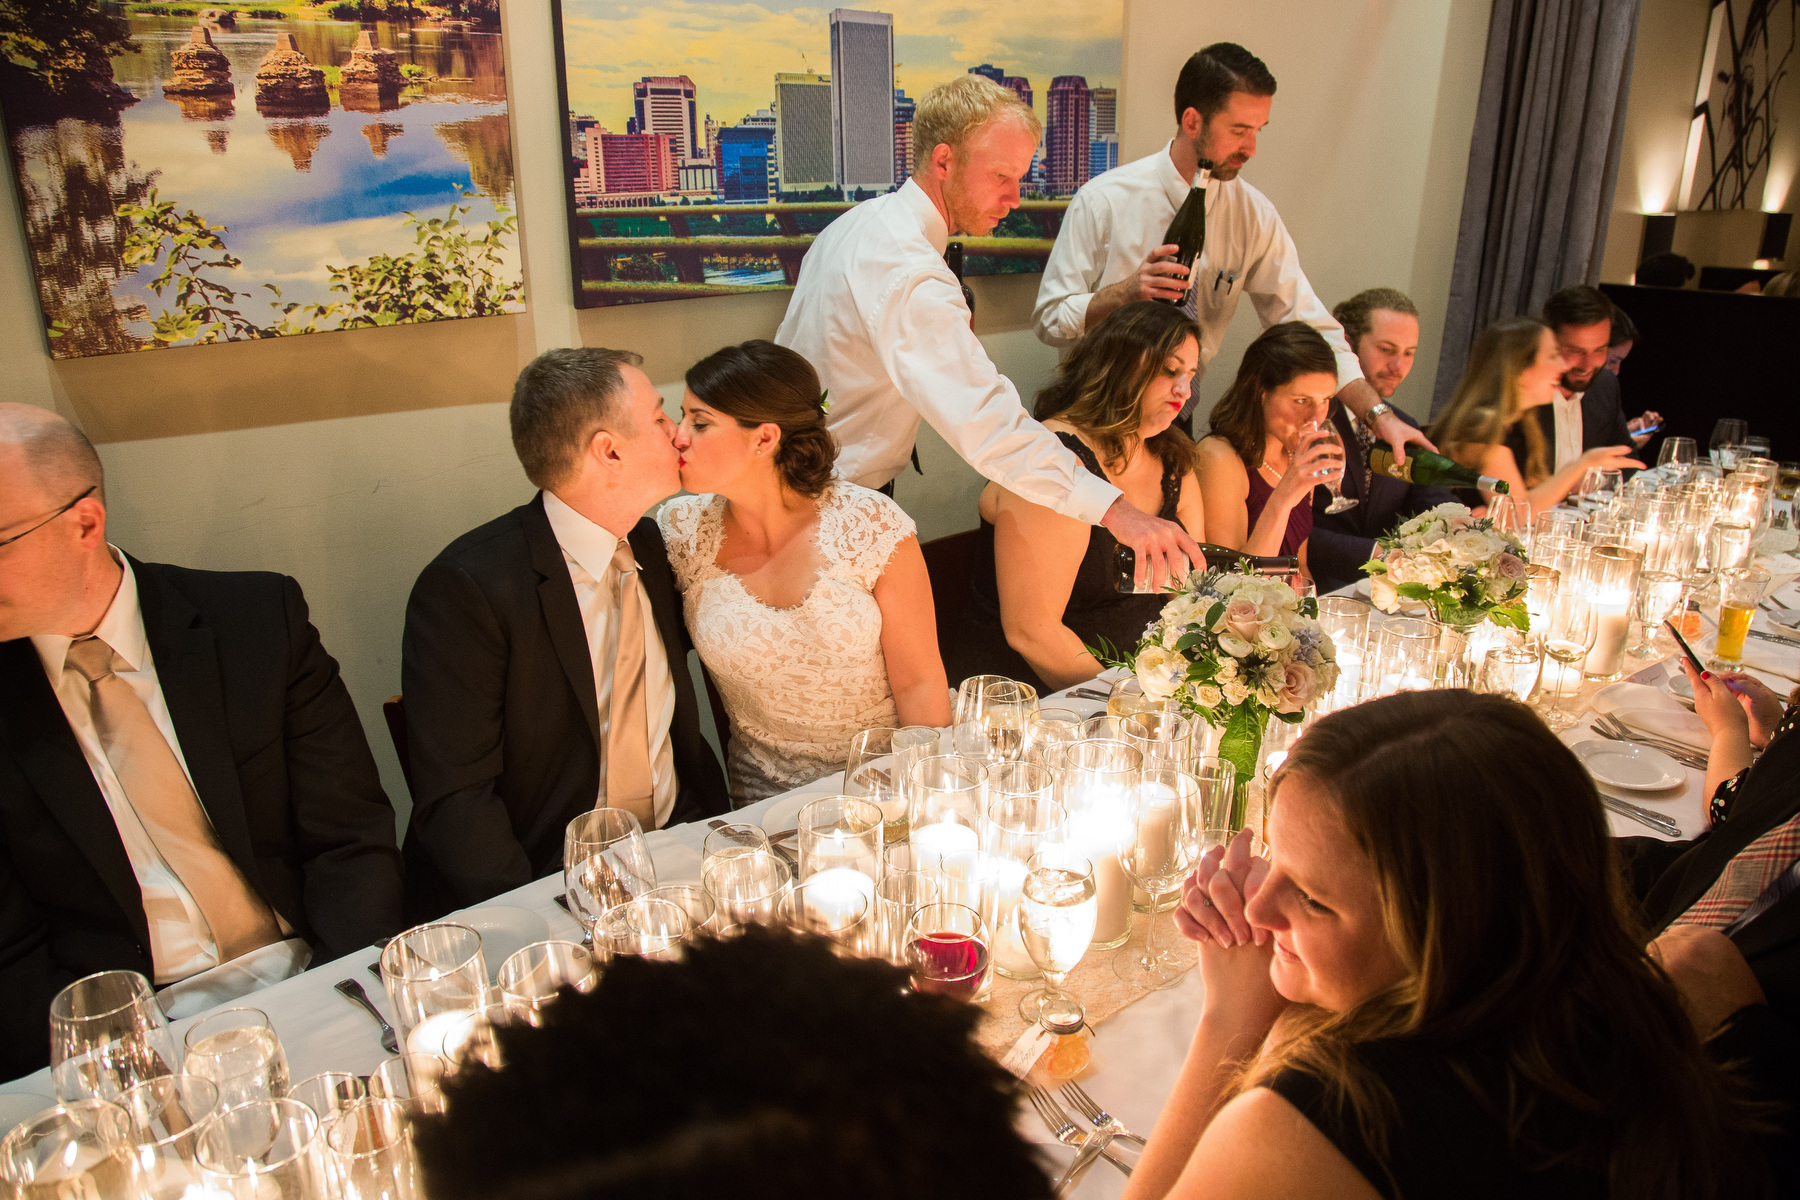 A bride and groom steal a kiss during their wedding reception at Julep's in Richmond, VA